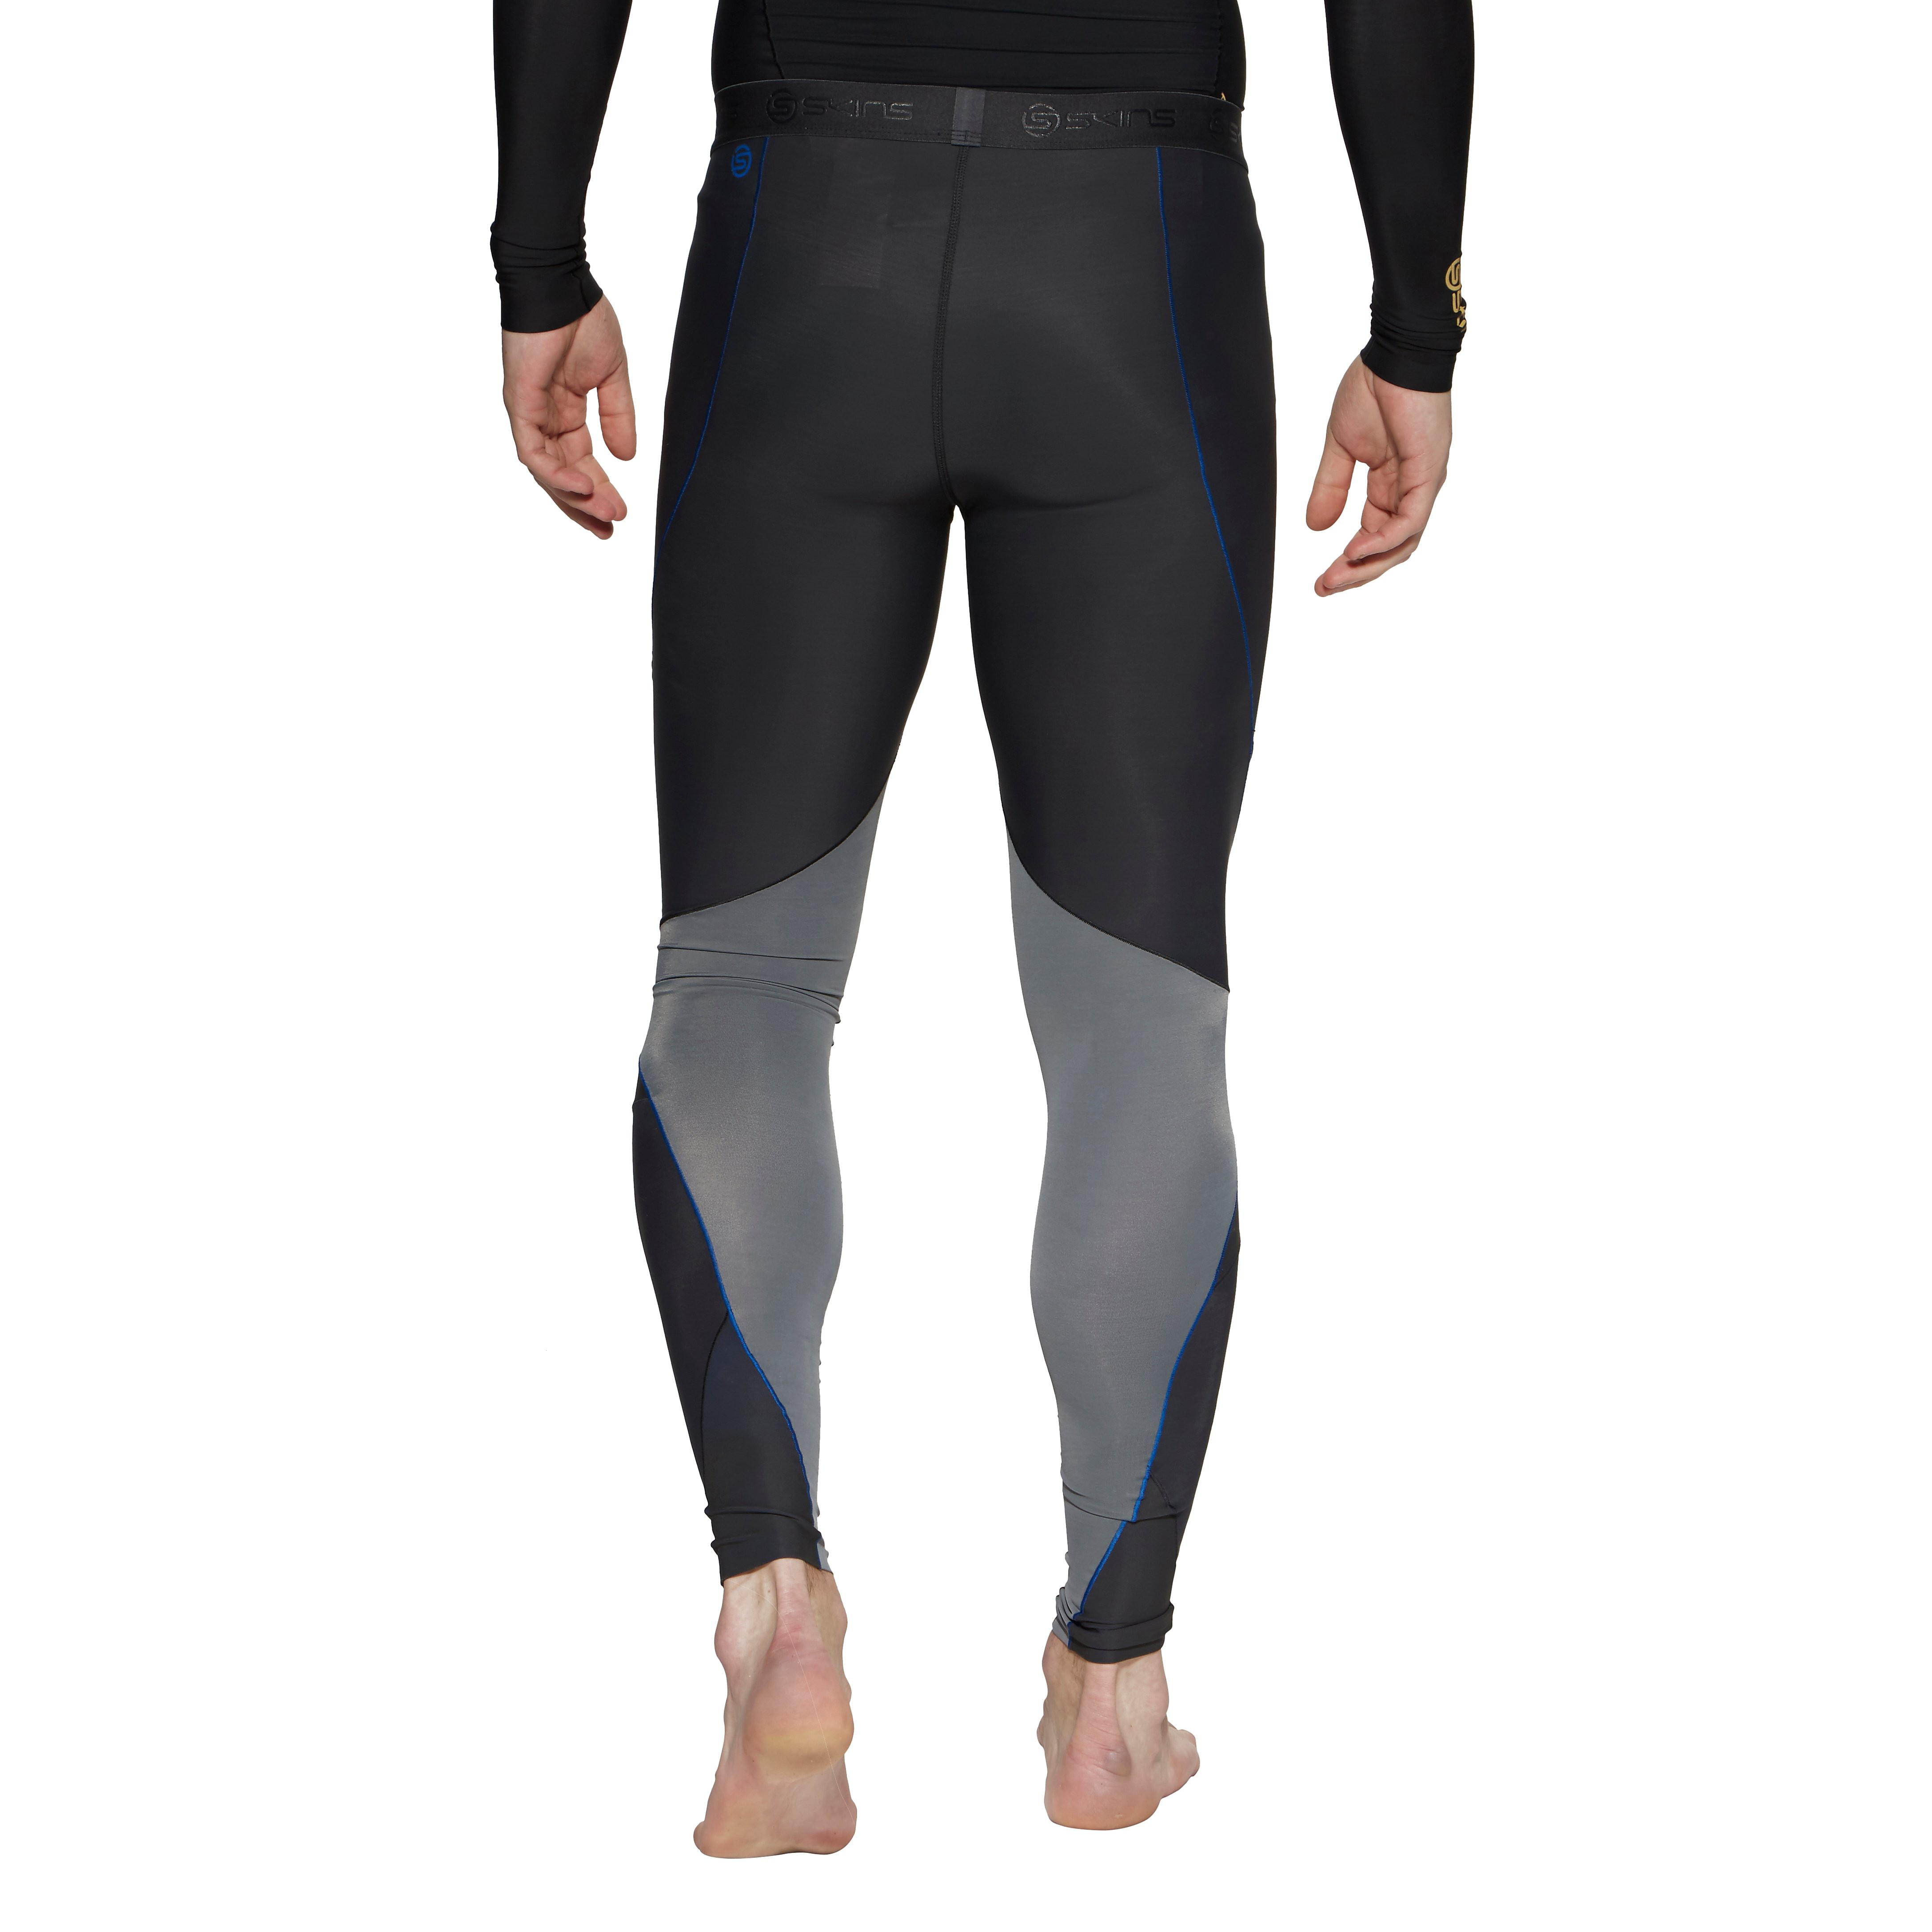 Skins RY400 Compression Long Men's Tights